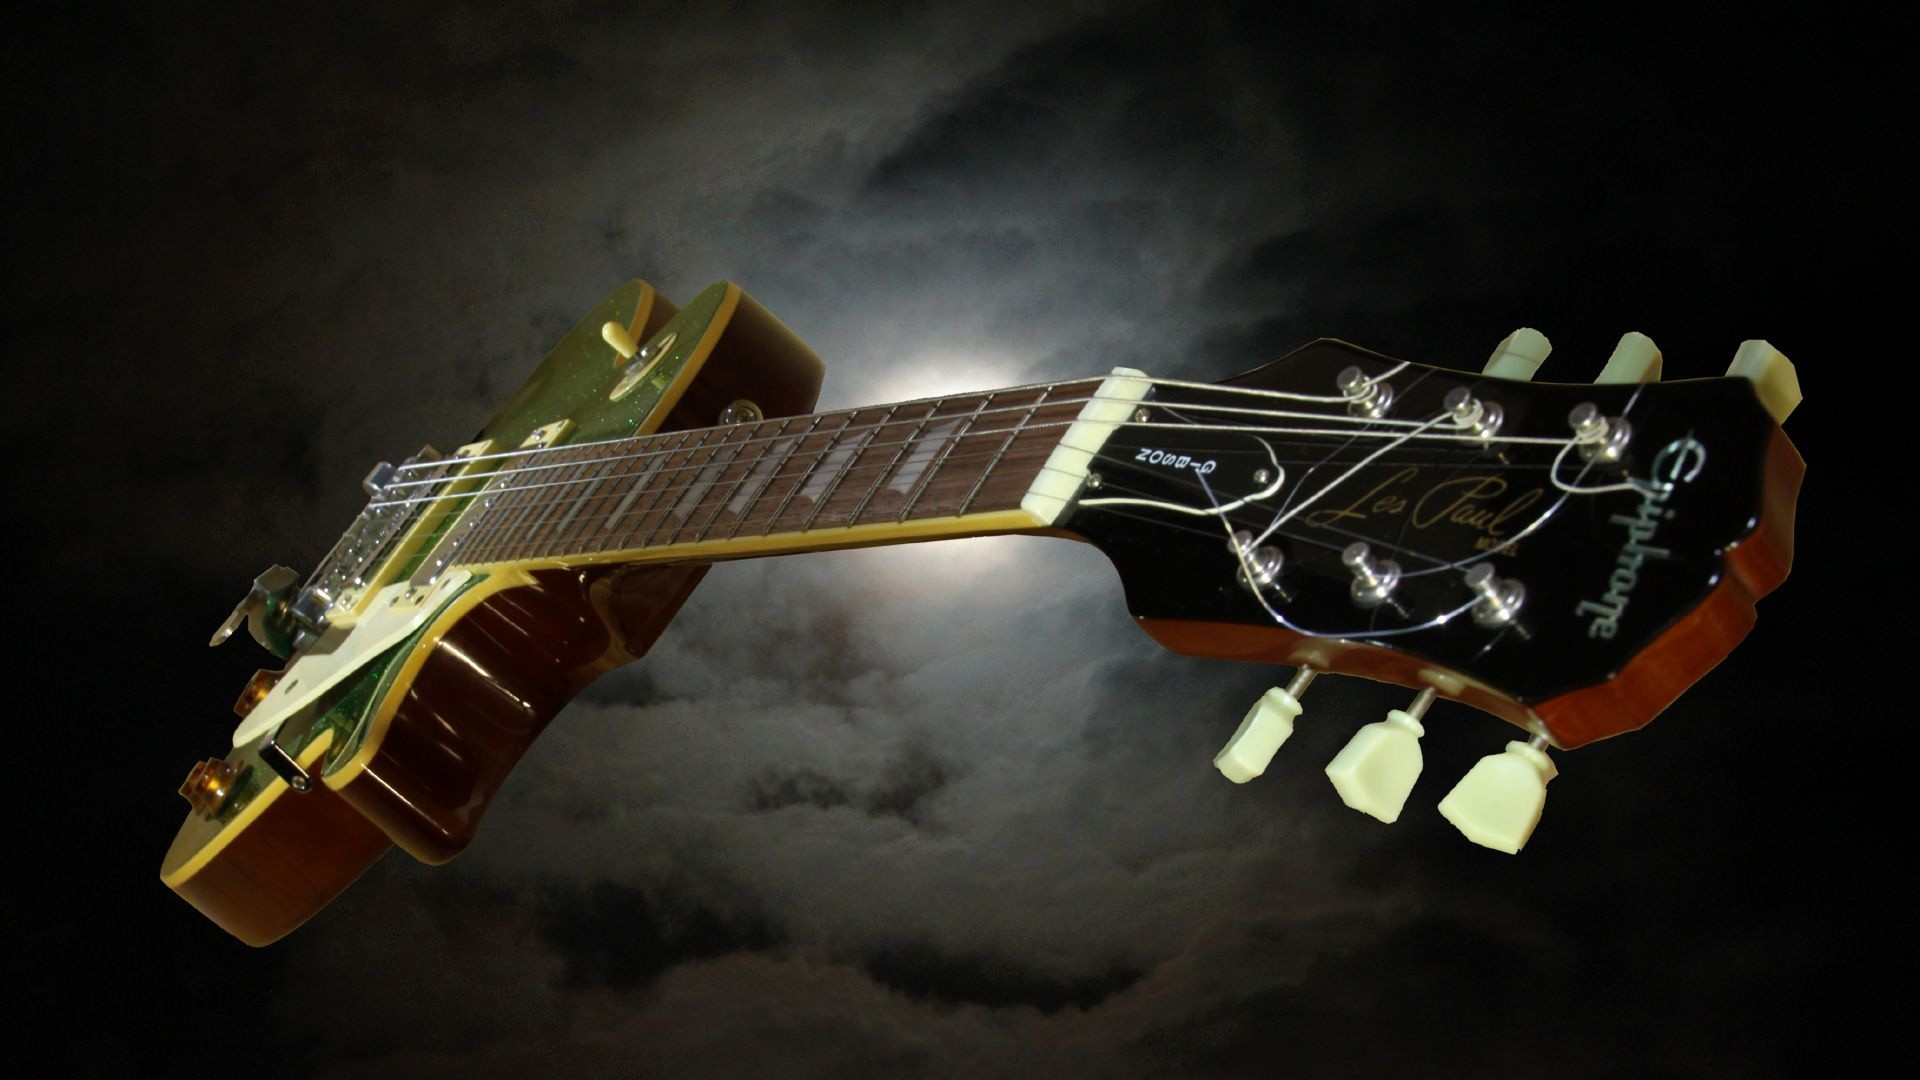 1920x1080 Gibson Guitar Gallery Hd Pictures Wallpaper Free Download Inspirational  Gibson Guitar Desktop Wallpaper Best Gibson Guitar